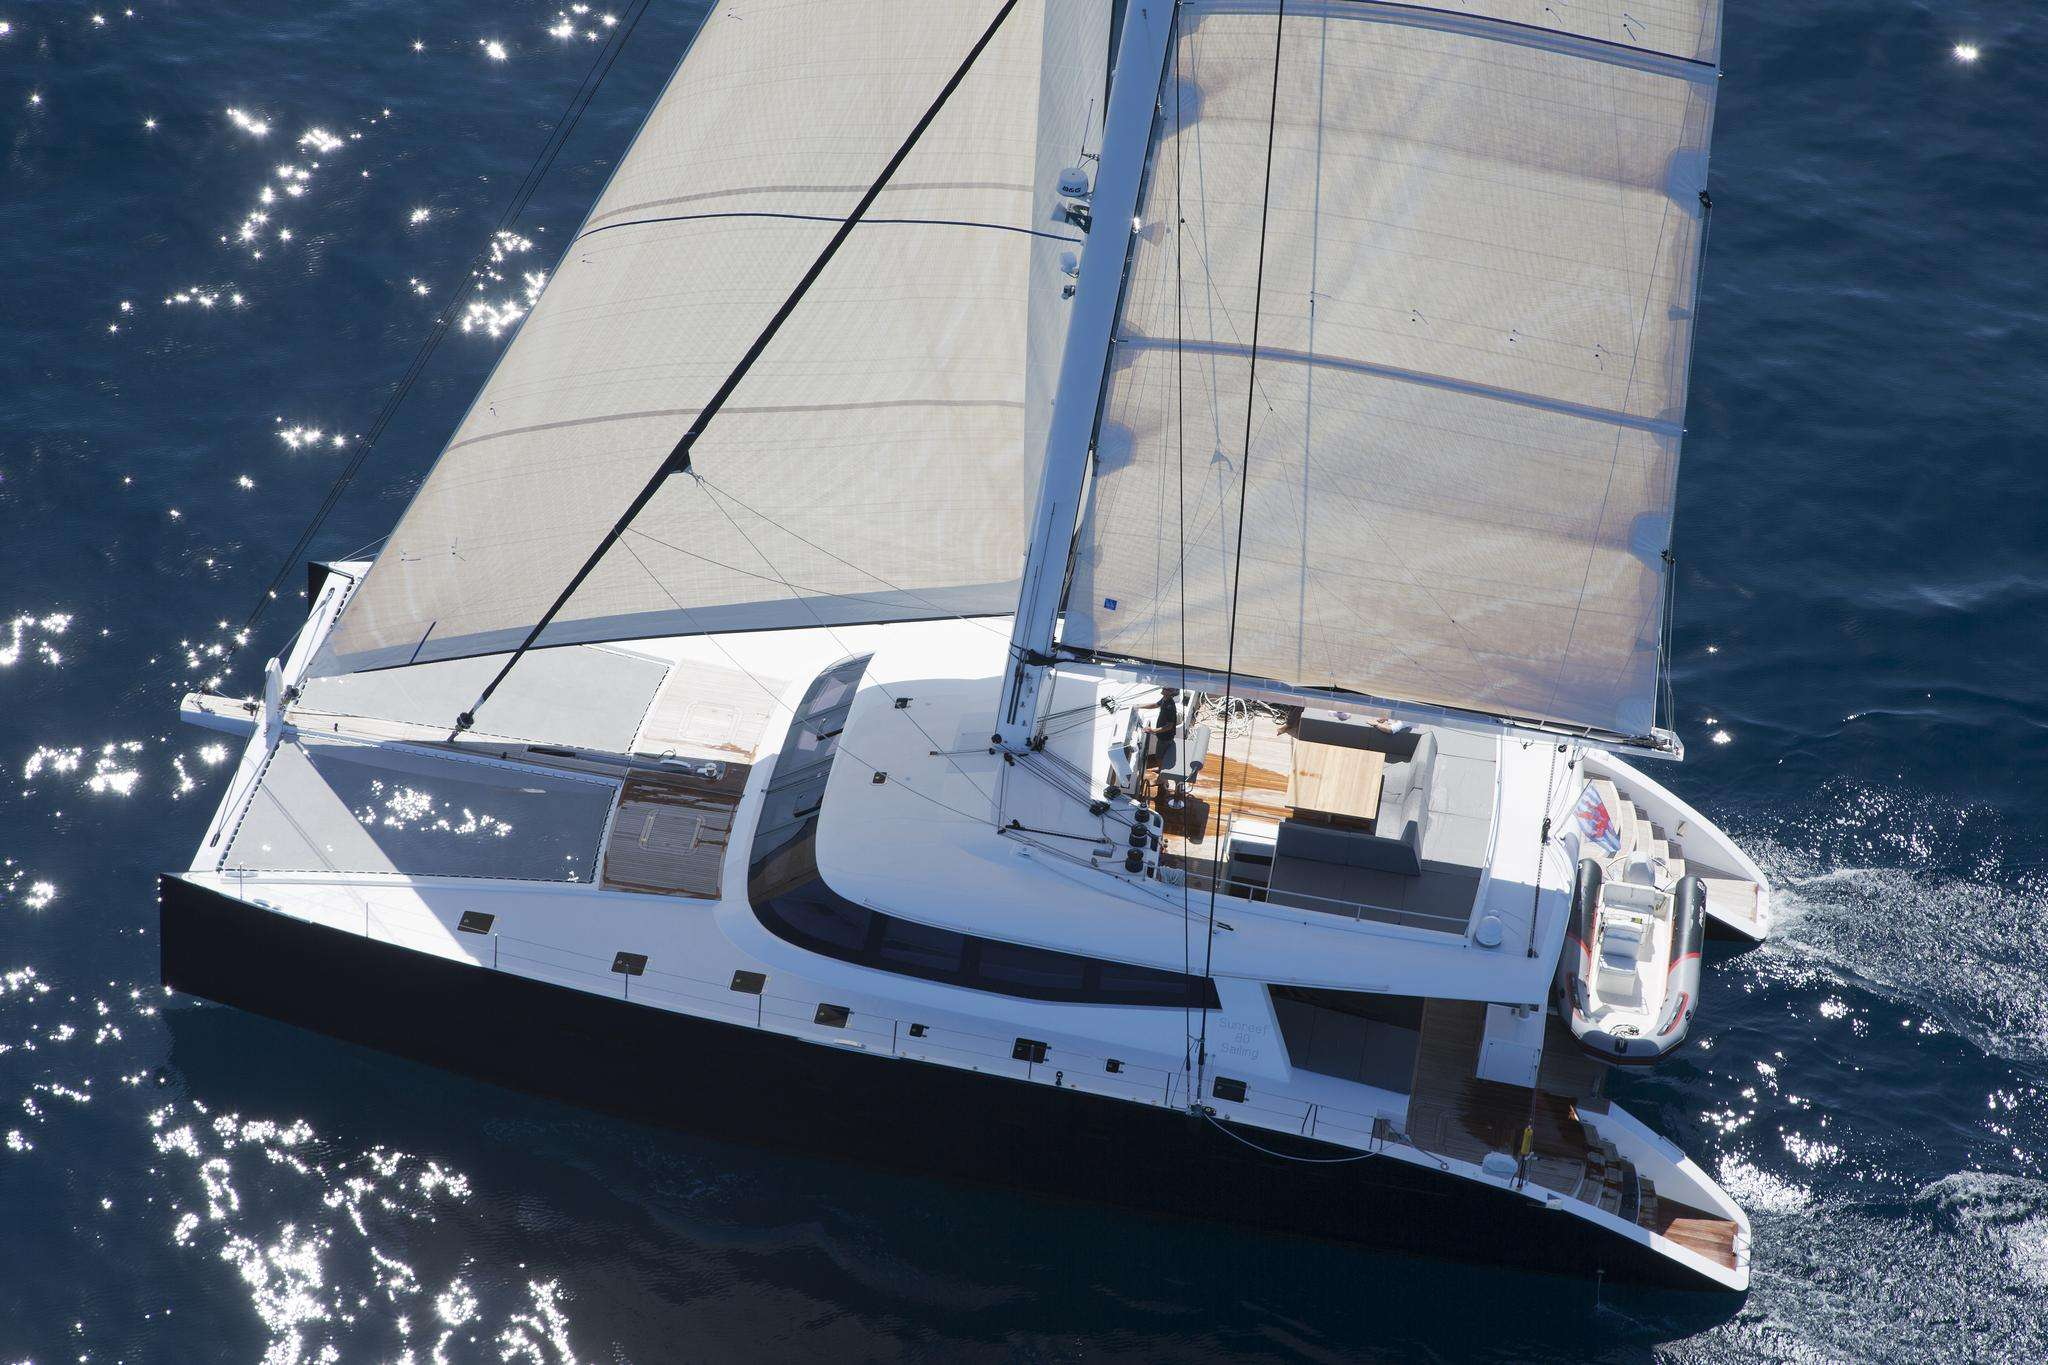 Main image of LEVANTE yacht